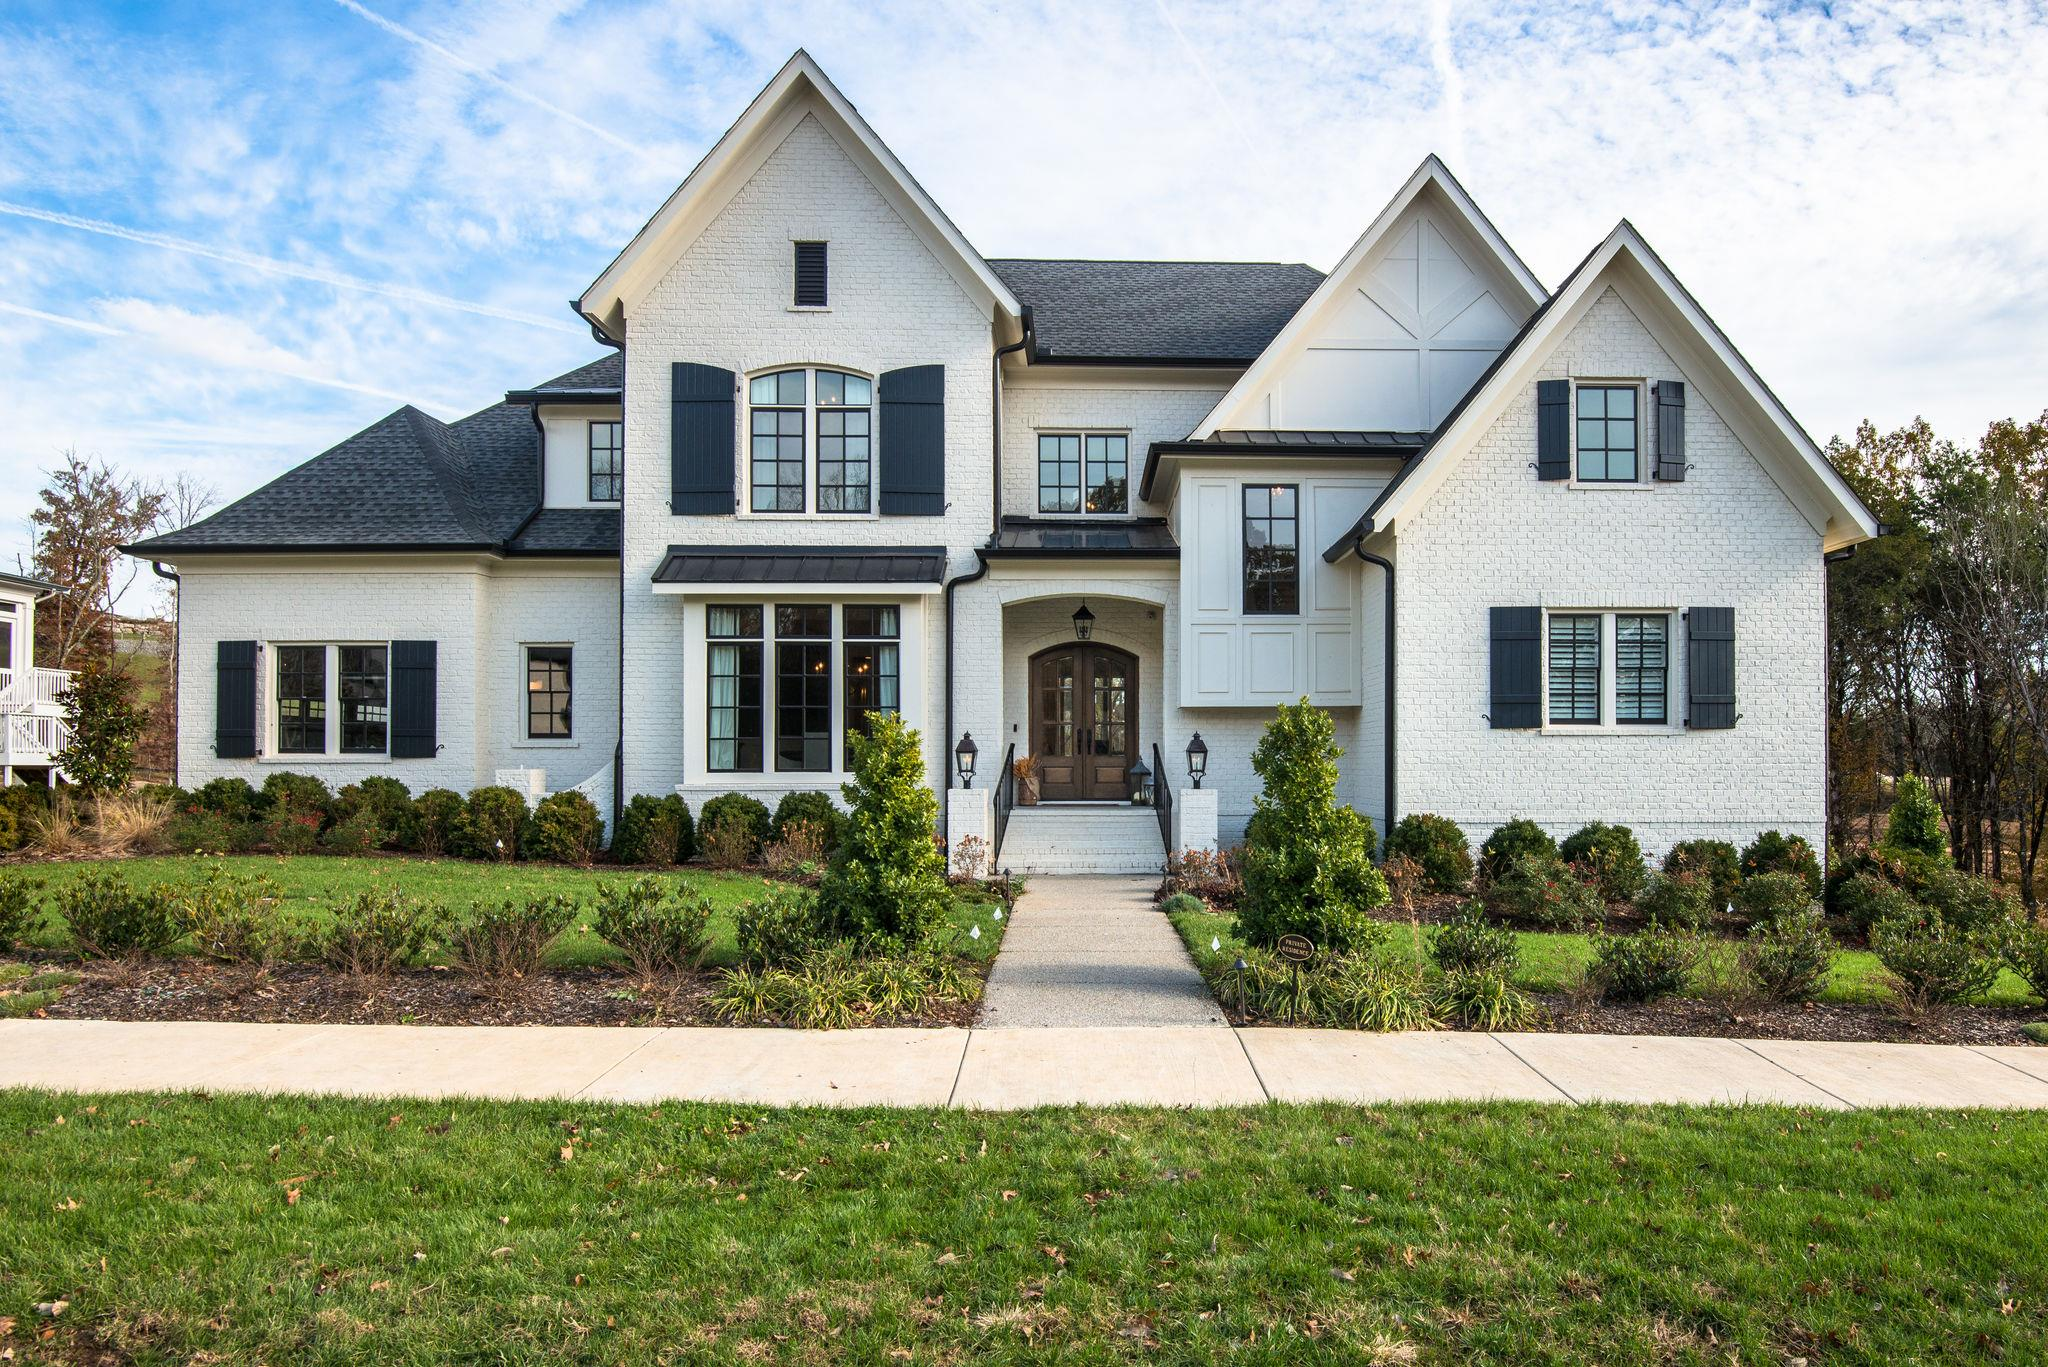 7388 Harlow Dr, College Grove, TN 37046 - College Grove, TN real estate listing